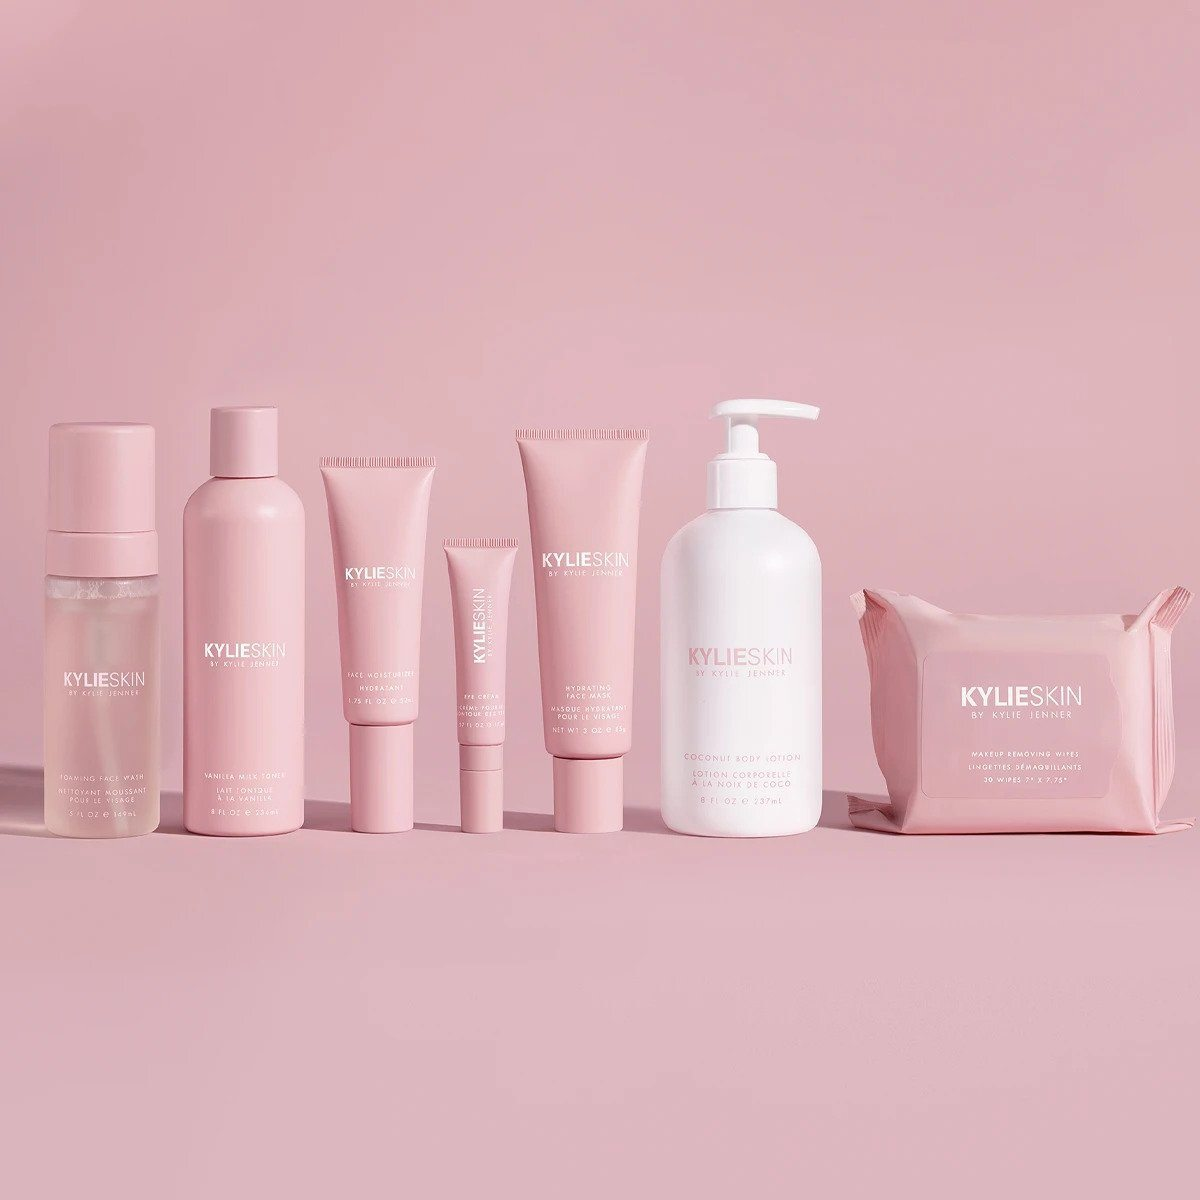 Top Skincare Brands to benchmark your e-commerce site